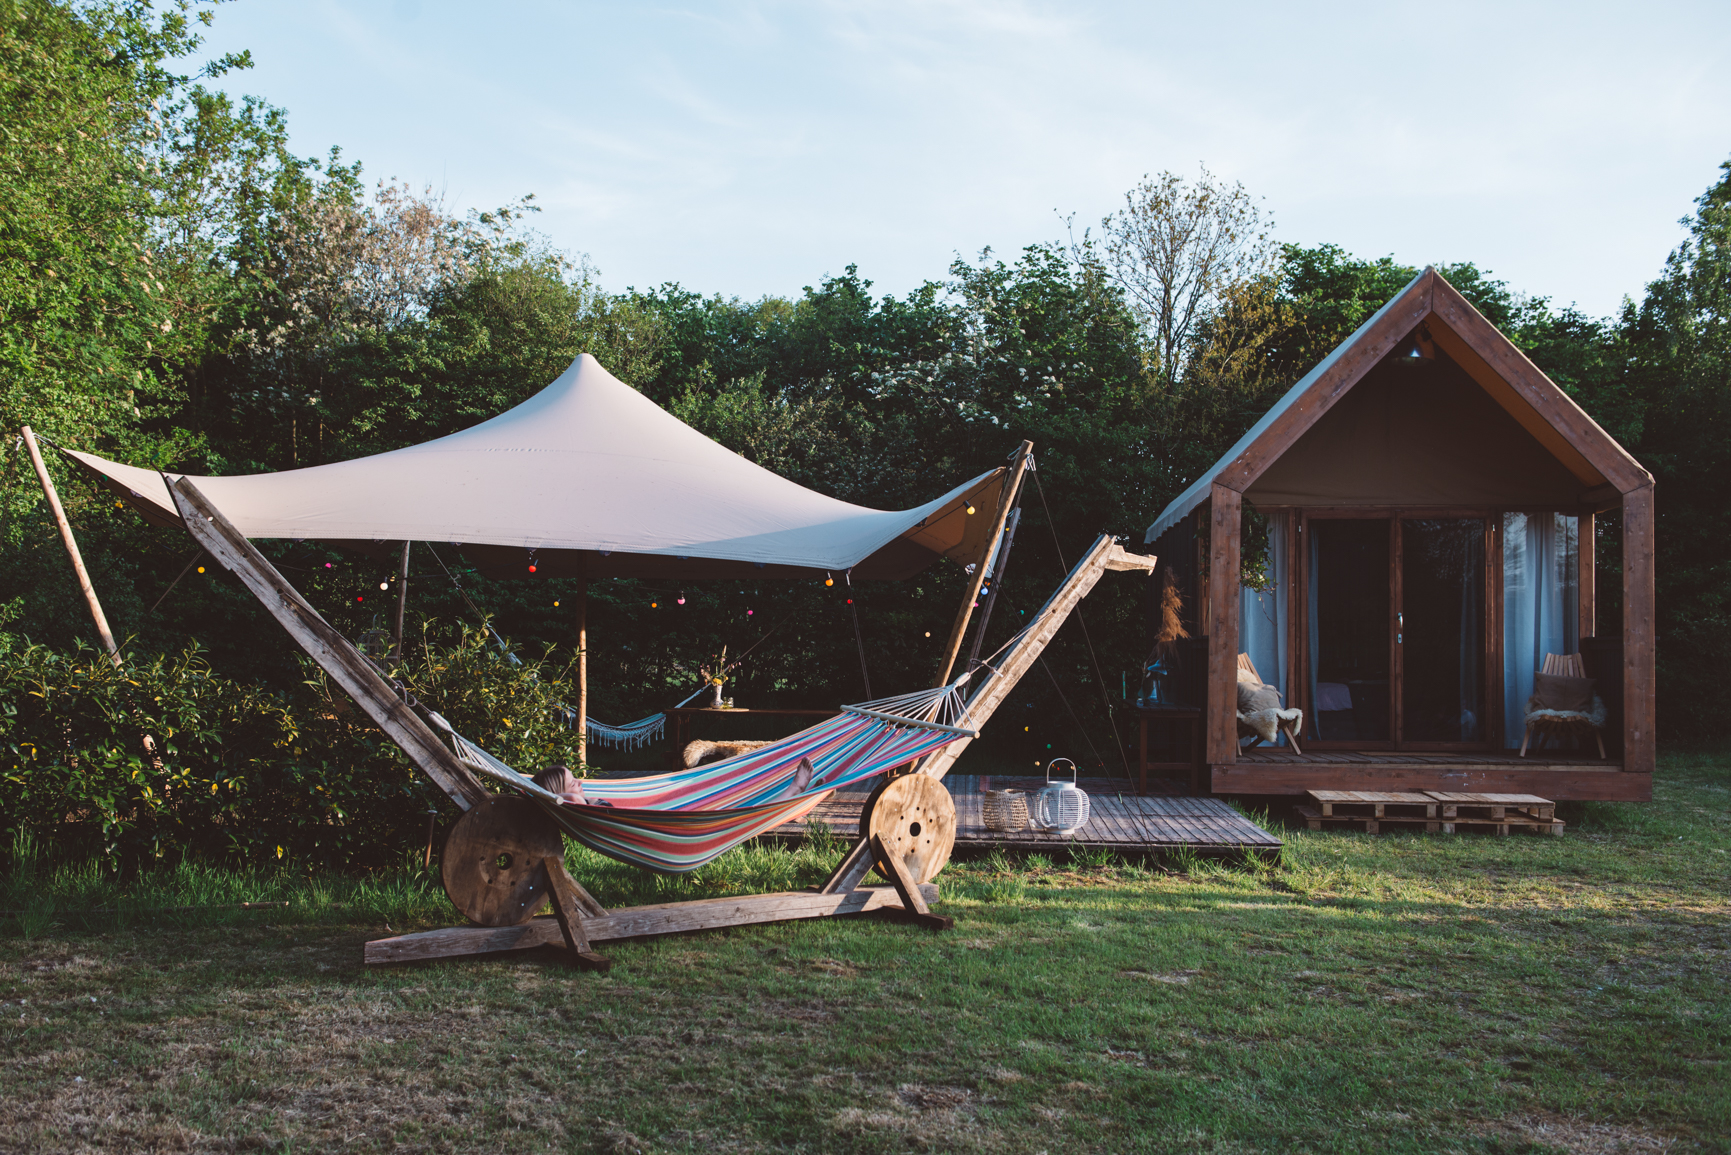 For-rest Glamp pop-up Glamping Campsolutions